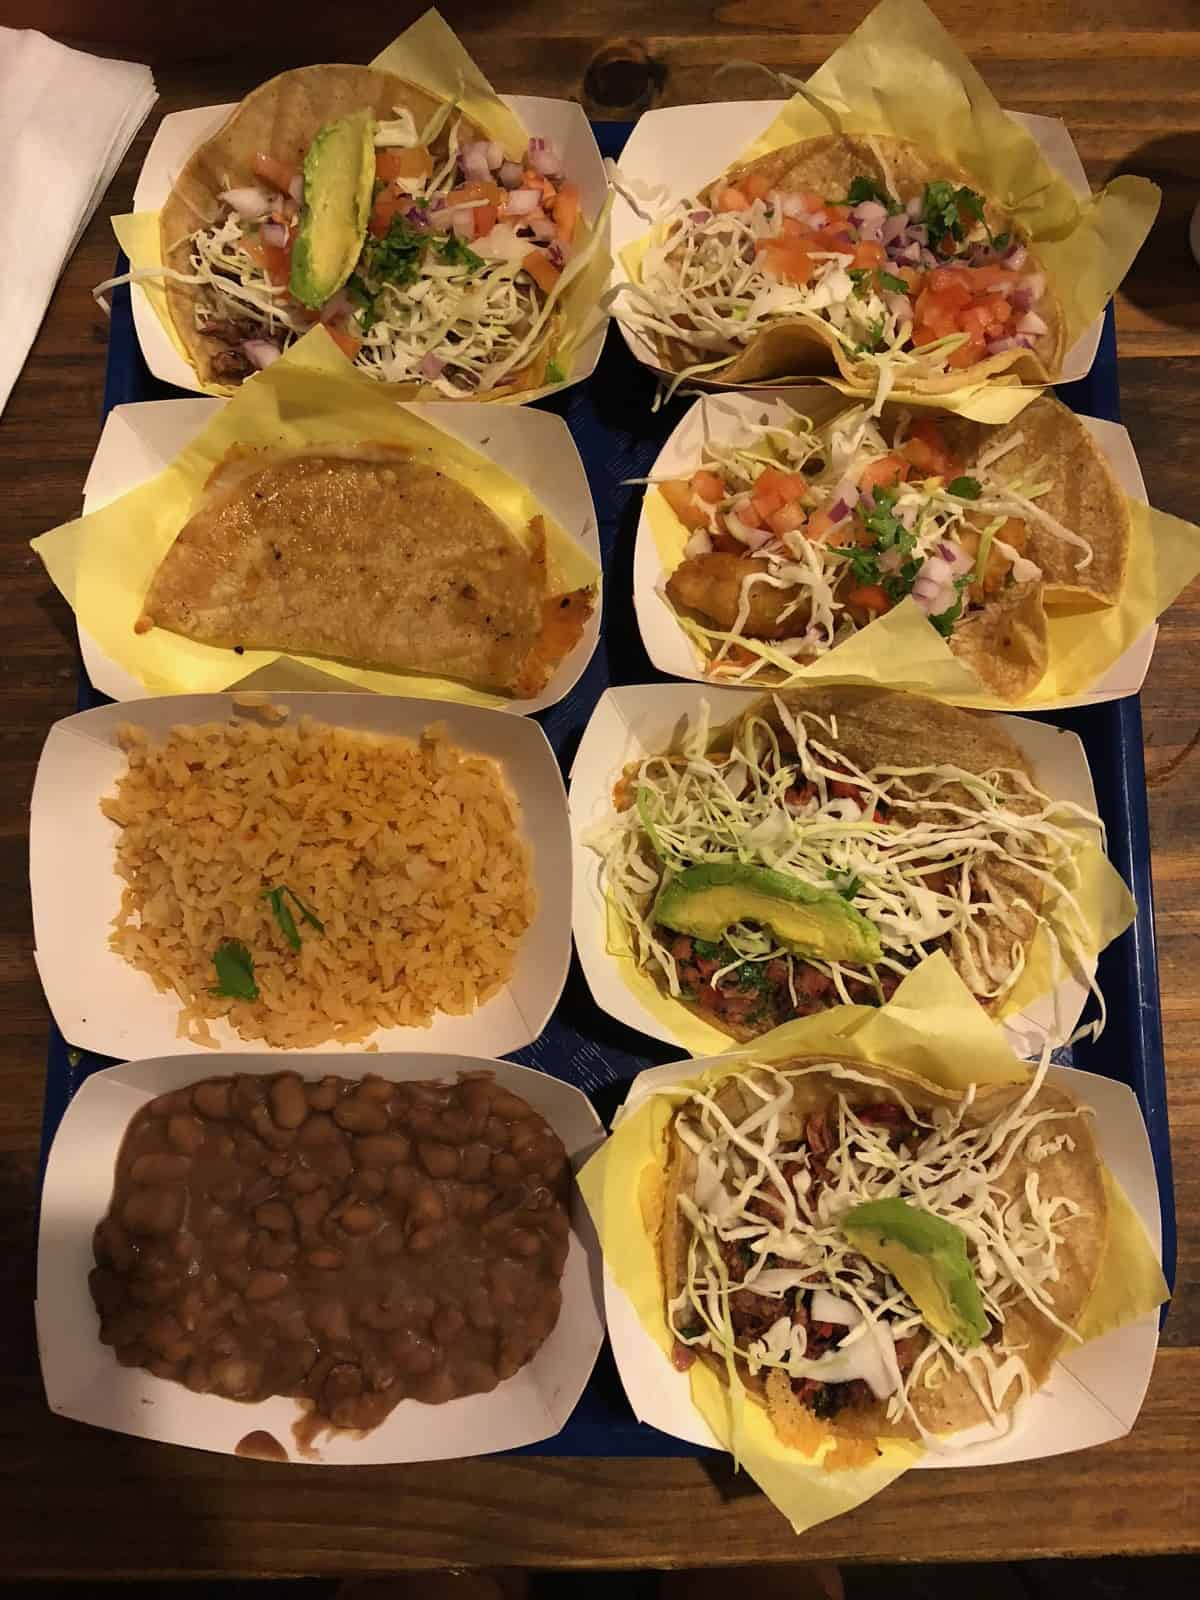 Huge platter of tacos, rice, beans, and a quesadilla from Oscar's in San Diego